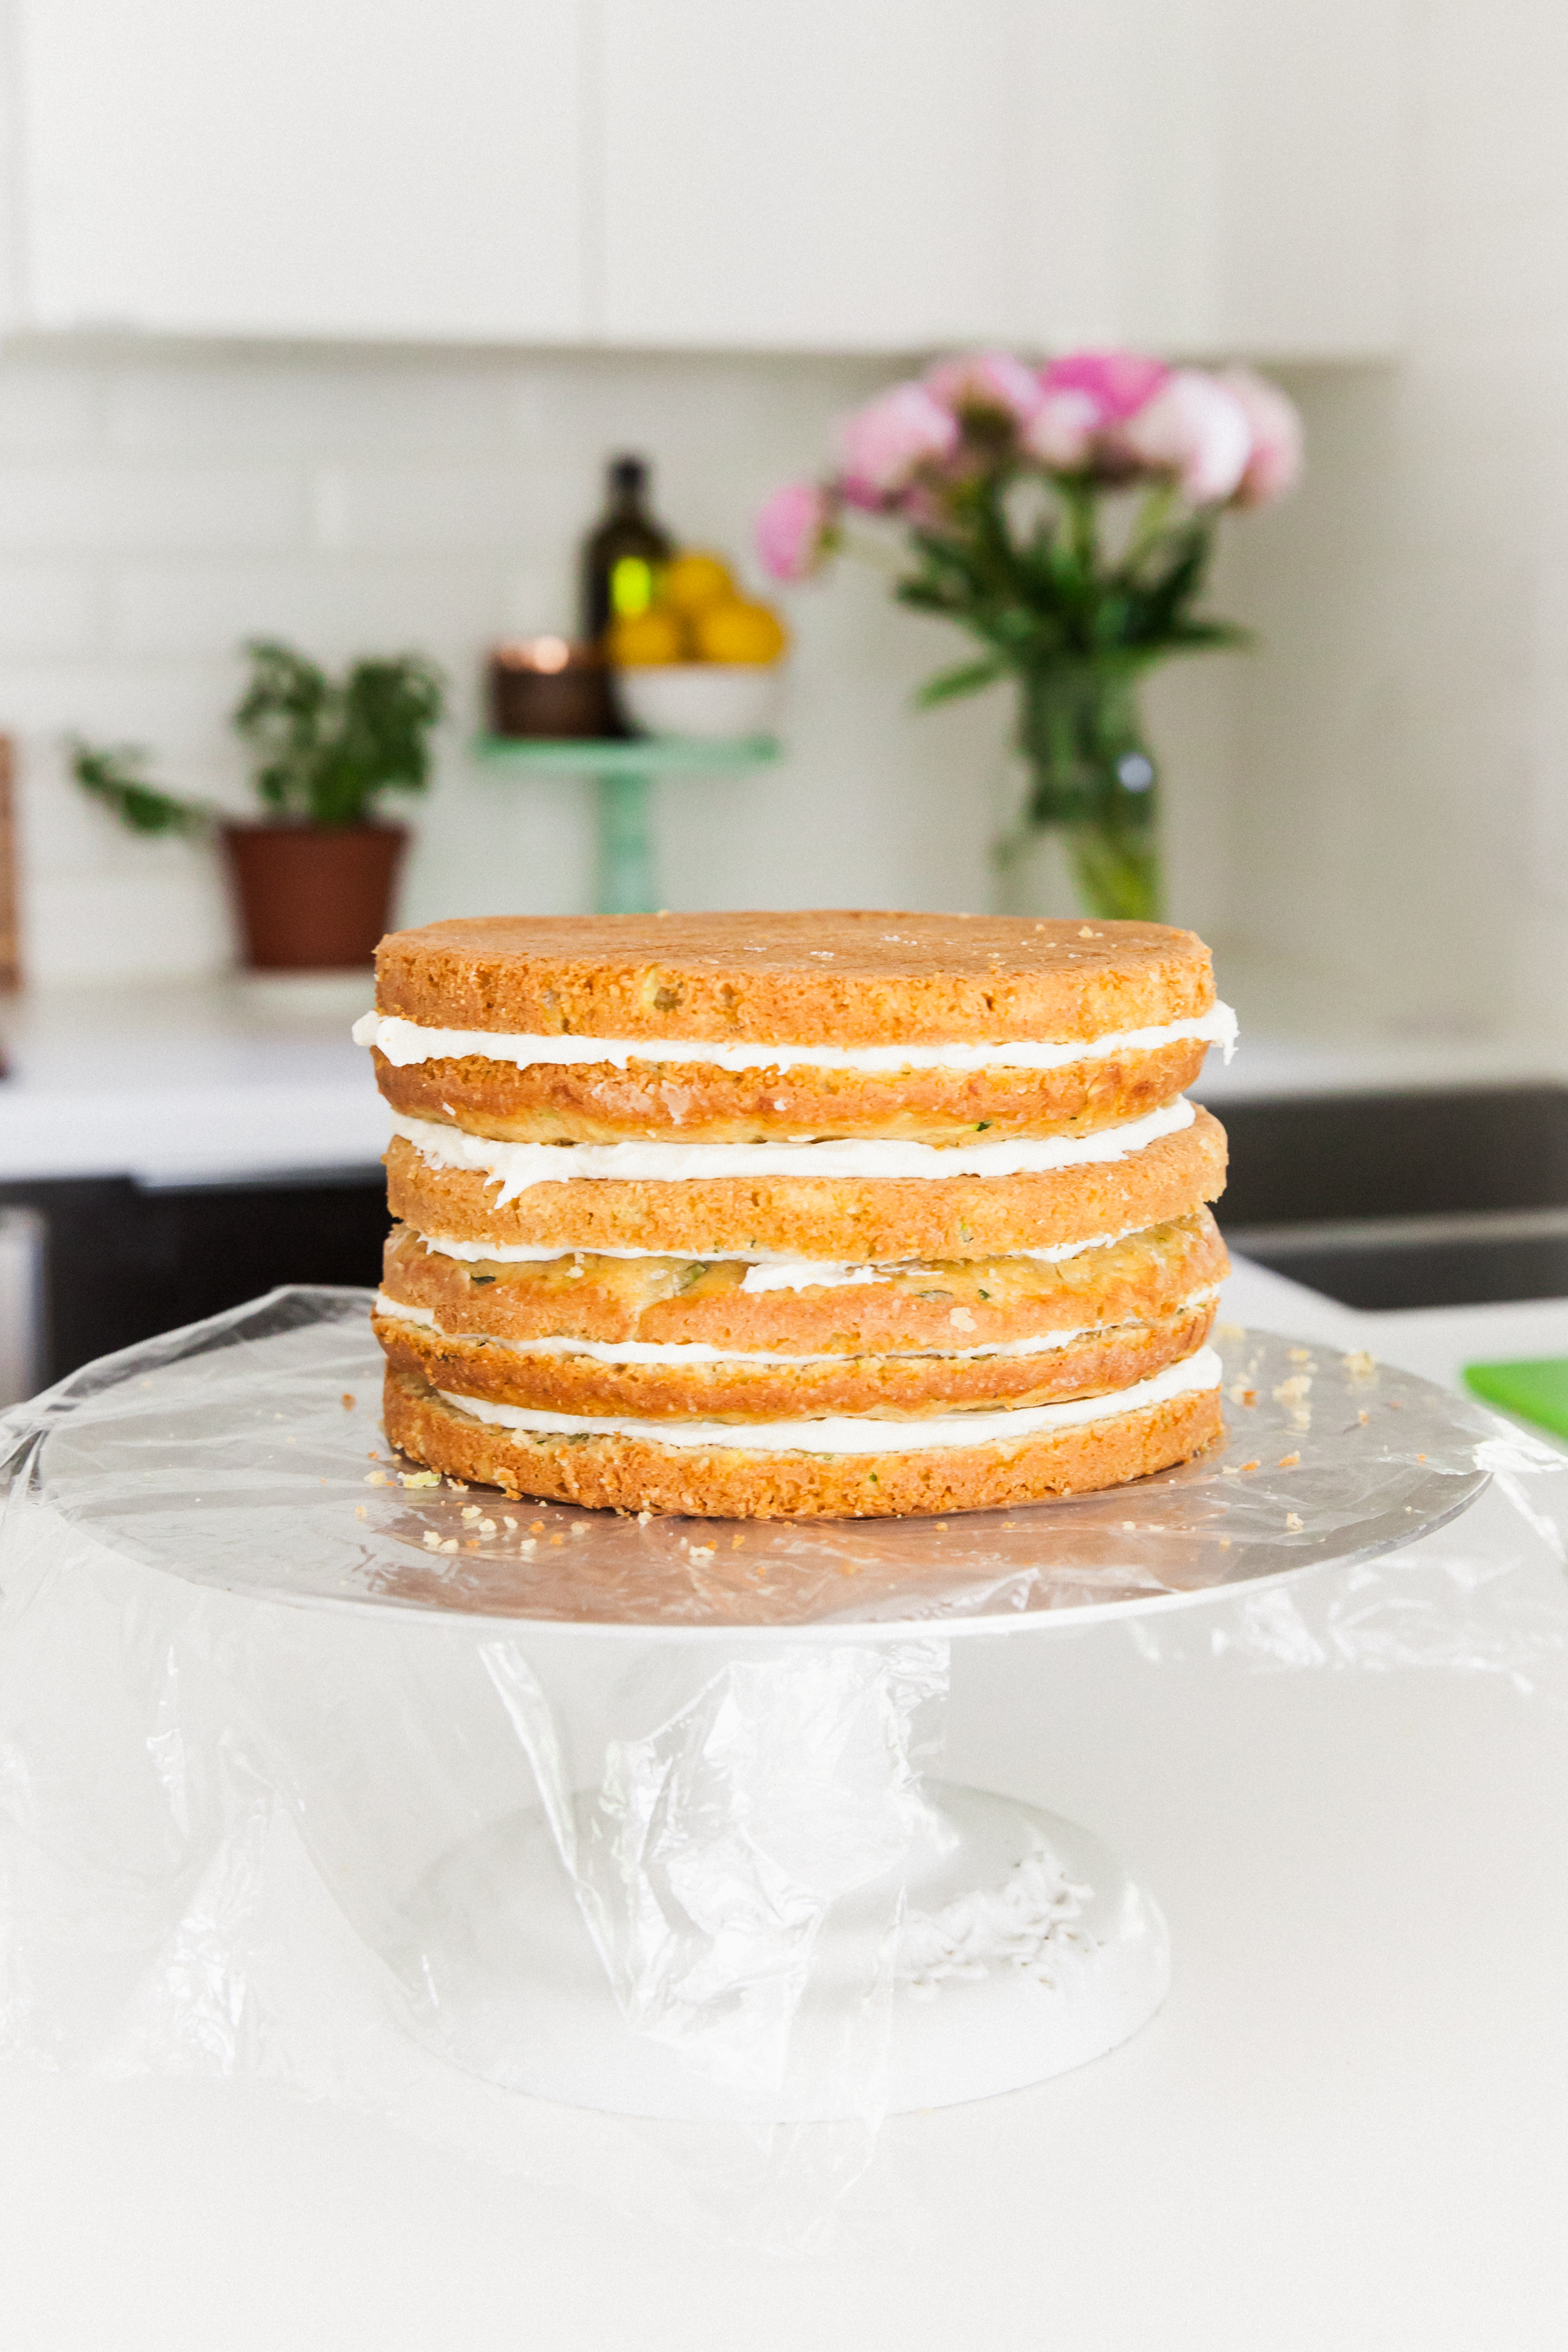 Lemon Zucchini Cake Recipe with goat cheese frosting and lemon glaze